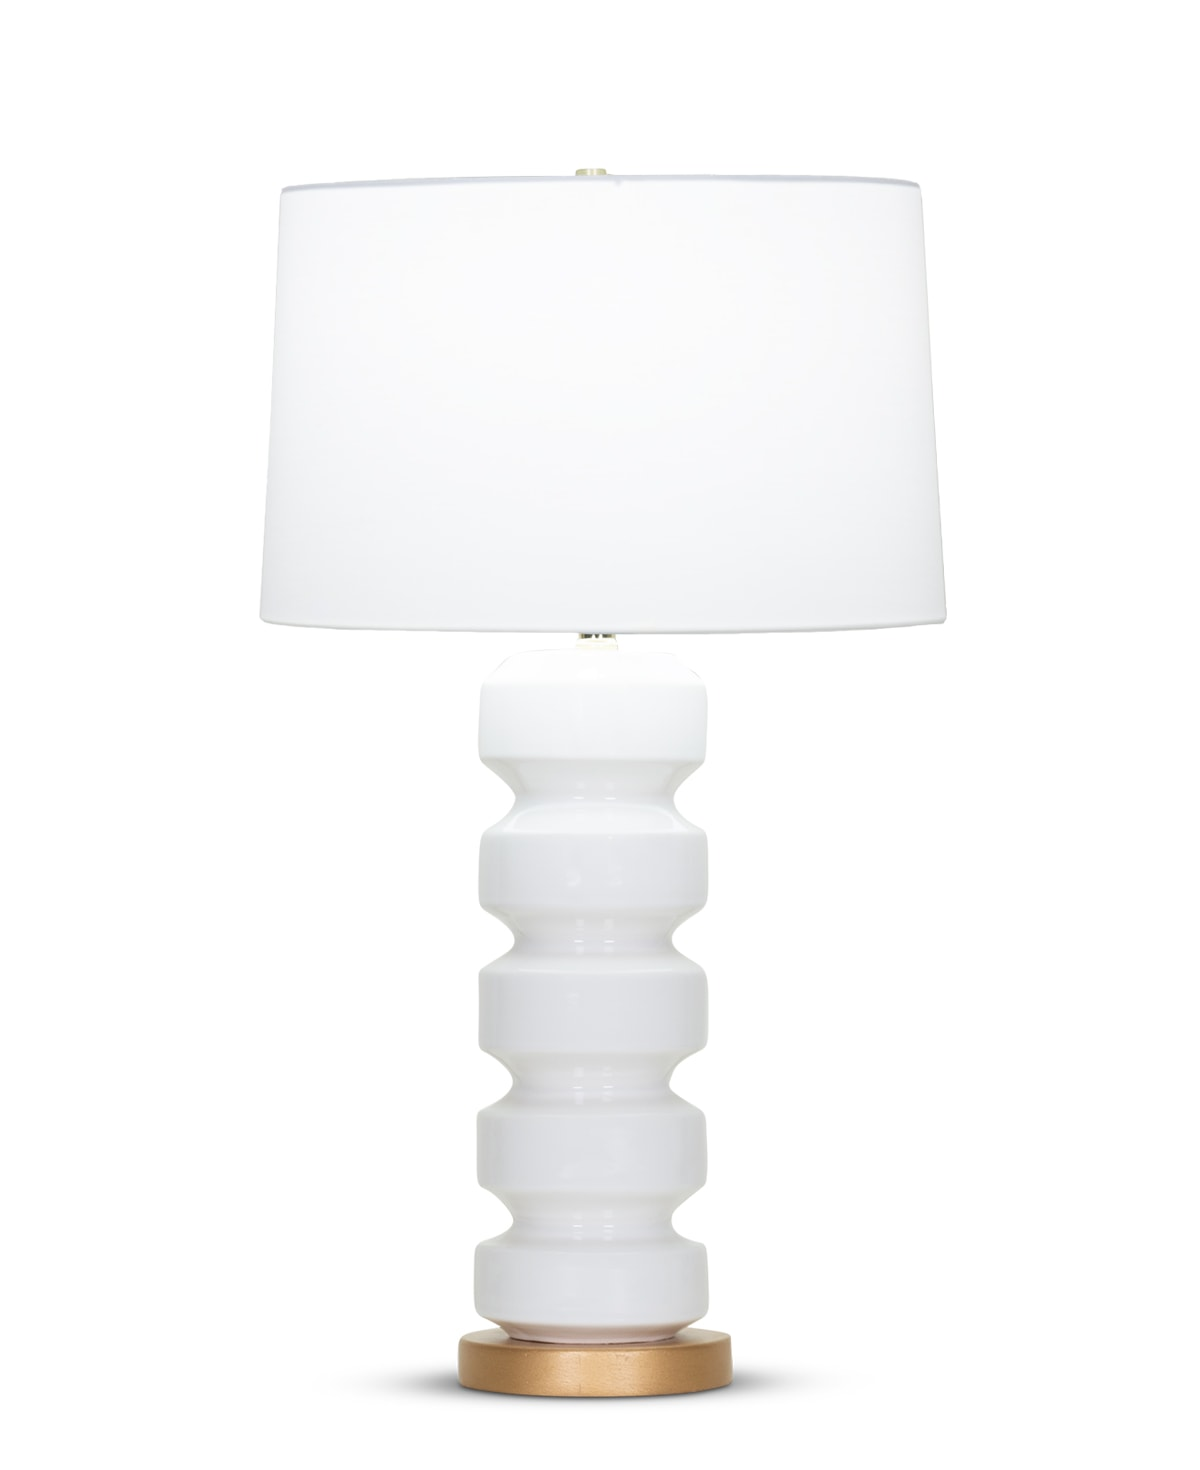 FlowDecor Skylar Table Lamp in ceramic with off-white finish and resin base with gold finish and off-white cotton tapered drum shade (# 4348)